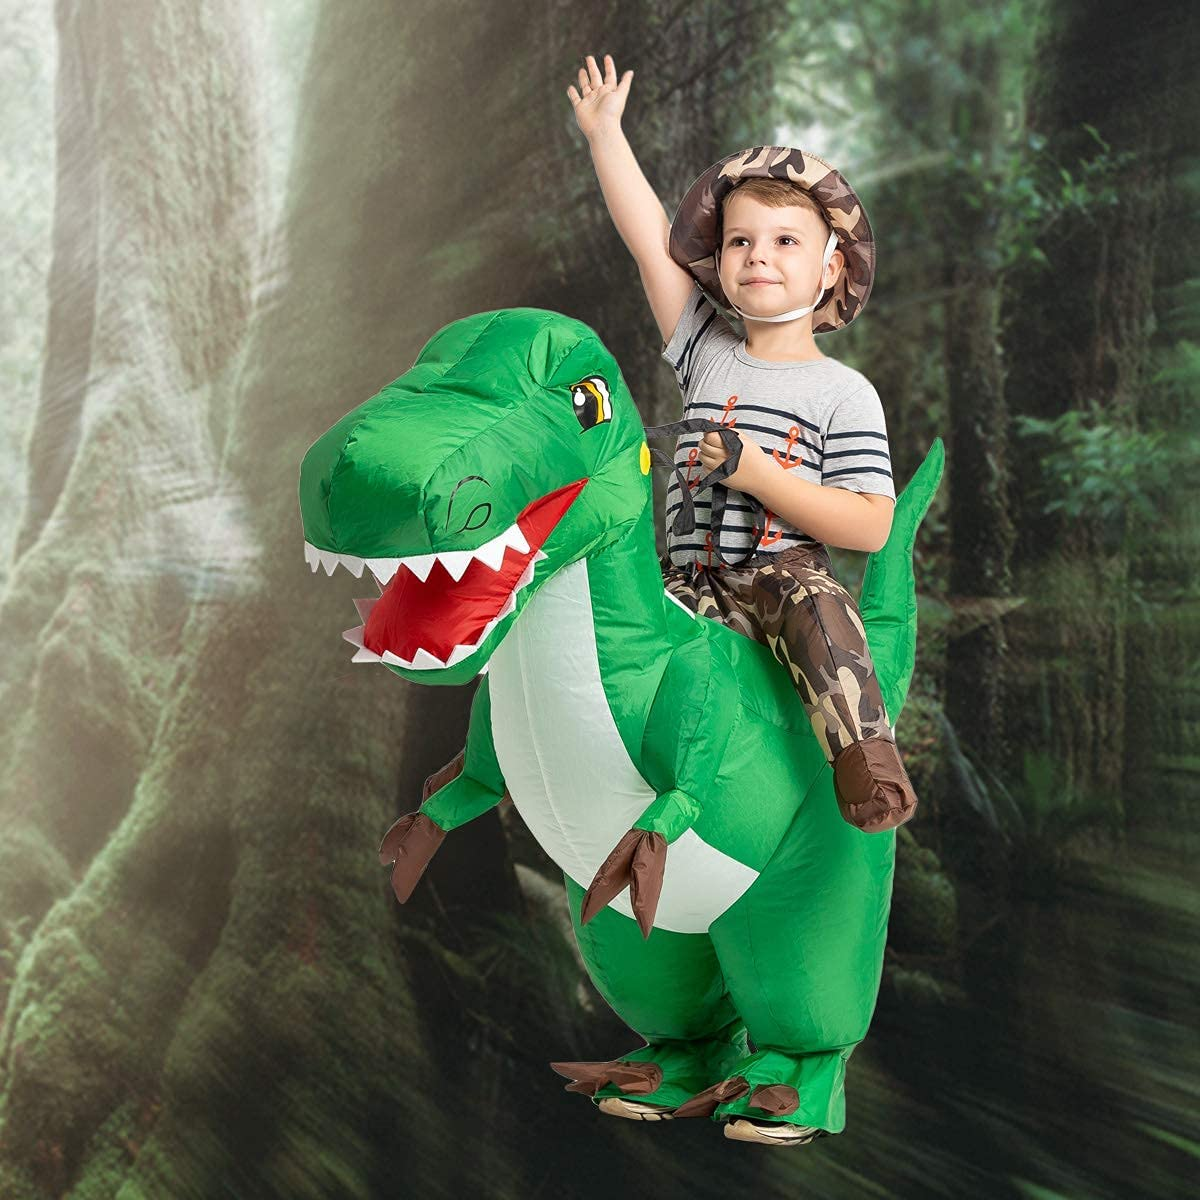 Kids' Halloween Costumes for Getting Into the Spooky Spirit